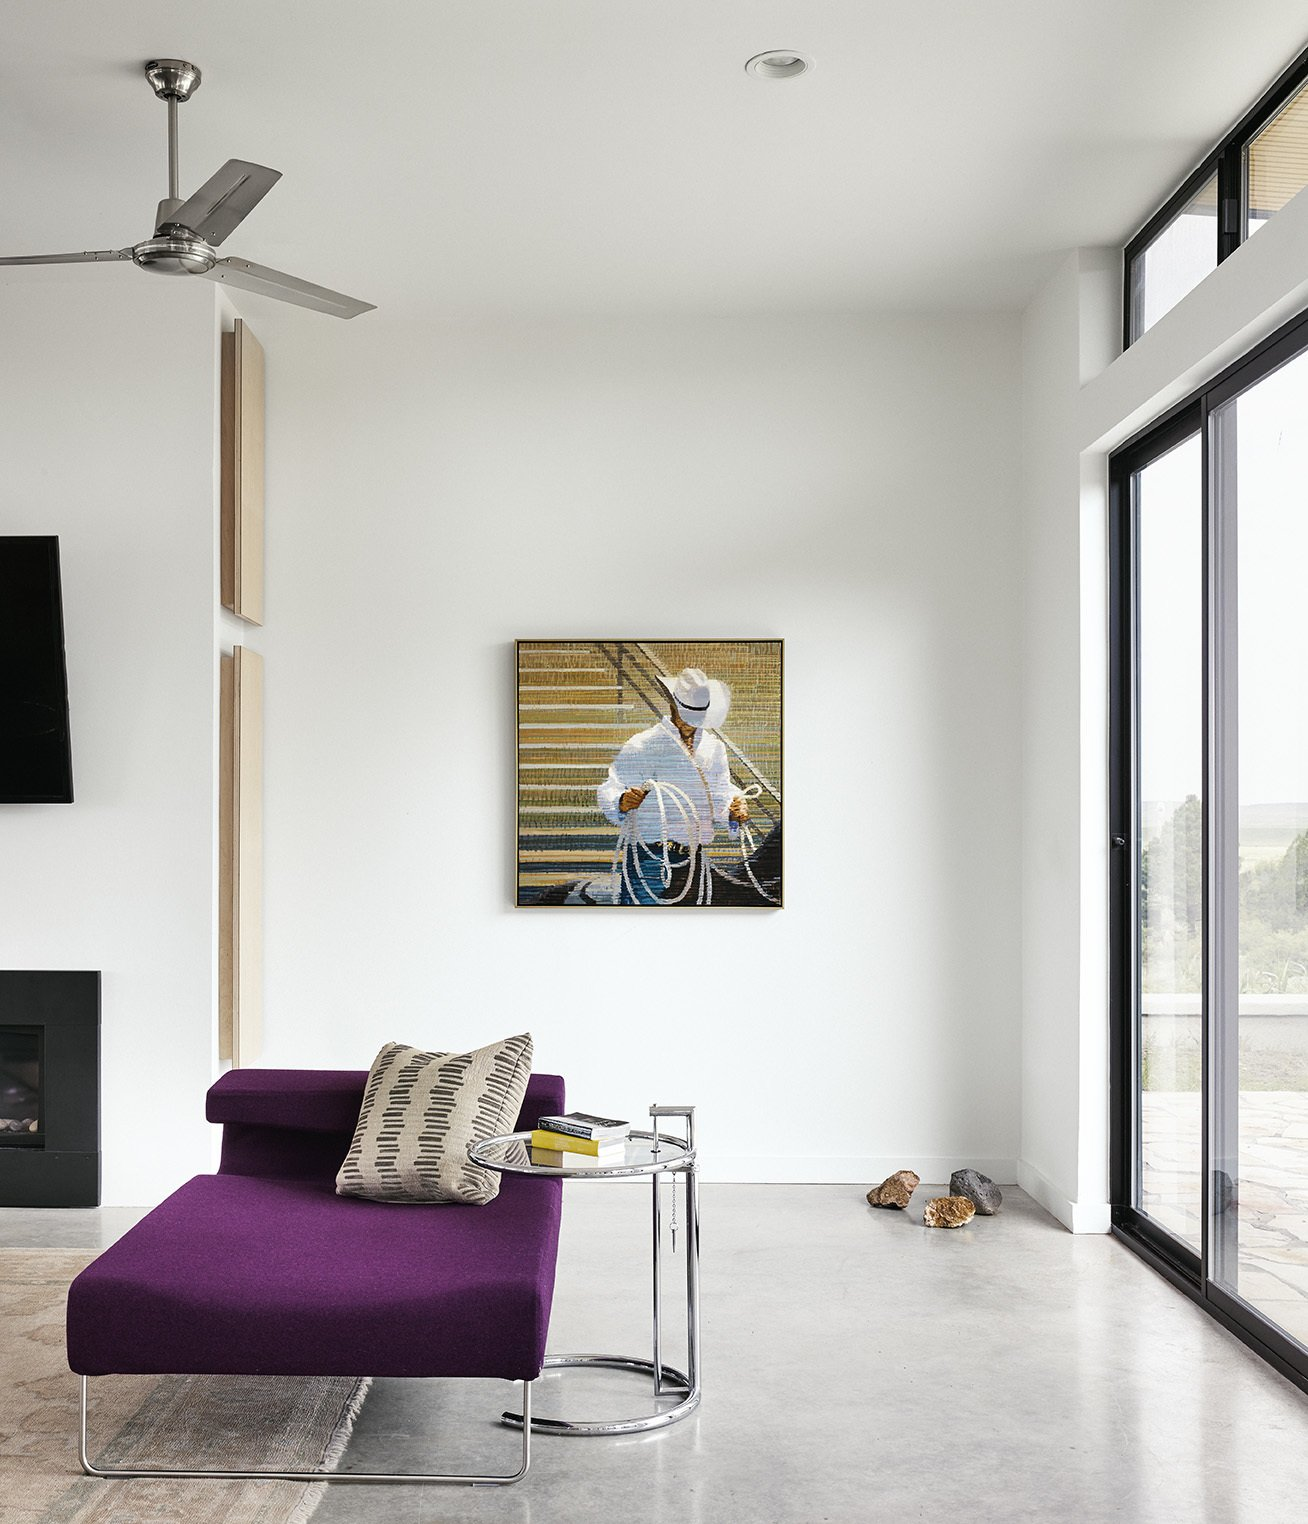 Flanked by sliding glass doors, the living room includes a Lowseat chaise longue by Patricia Urquiola for Moroso, paired with an E1027 side table by Eileen Gray. Tagged: Living Room, Bench, End Tables, Concrete Floor, Sofa, Rug Floor, and Recessed Lighting.  Photo 5 of 6 in The Long Way Home